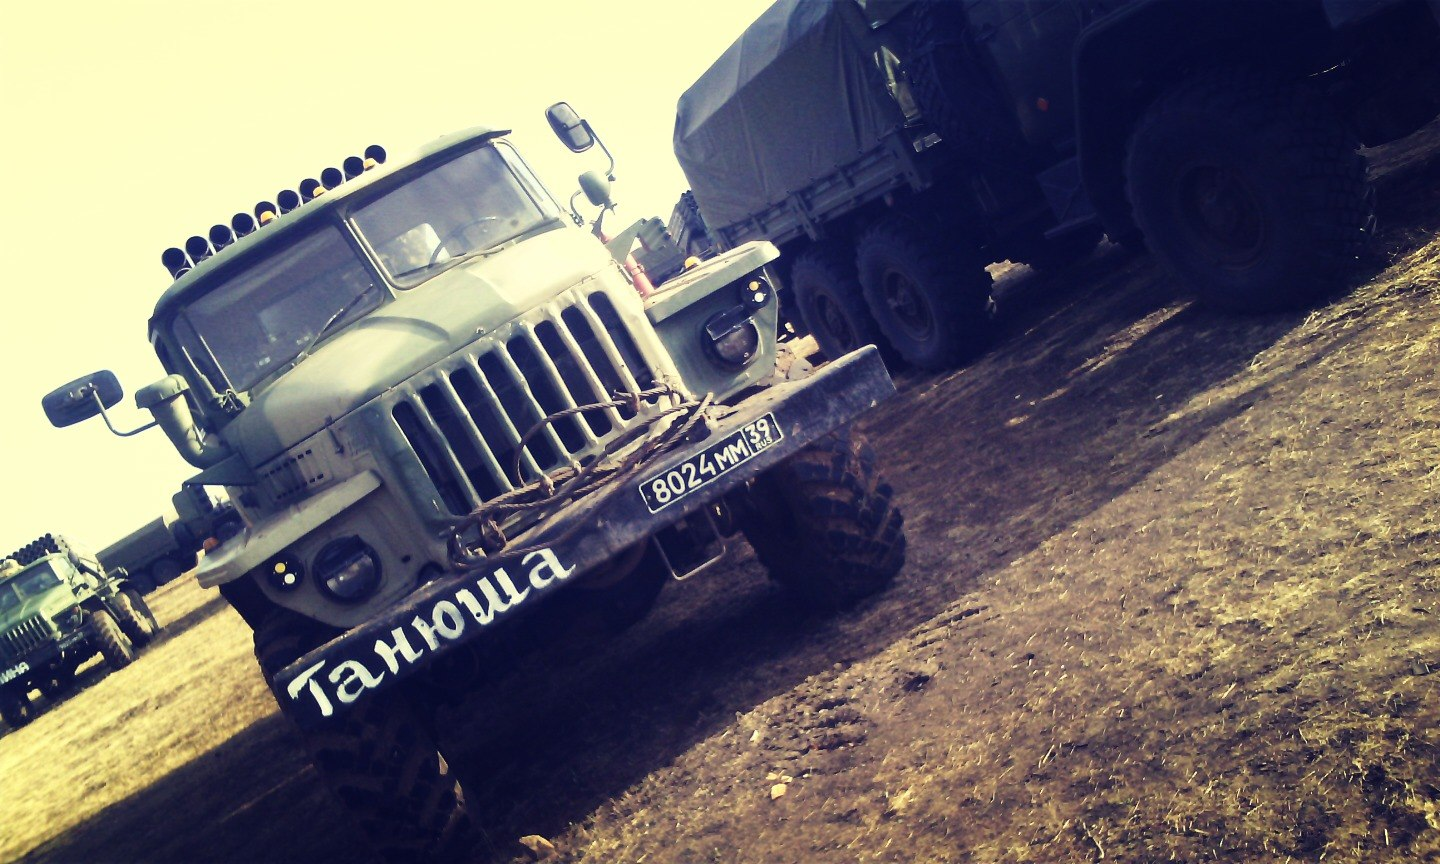 """MLRS BM-21 Grad with """"Tanyusha"""" on the front bumper. The photograph is from the VK account of Sergey Golovnin, who is in the military unit 08725 group, serves in the Northern Fleet, and has shared photographs of military equipment of the 200th Brigade. Archive / Original"""